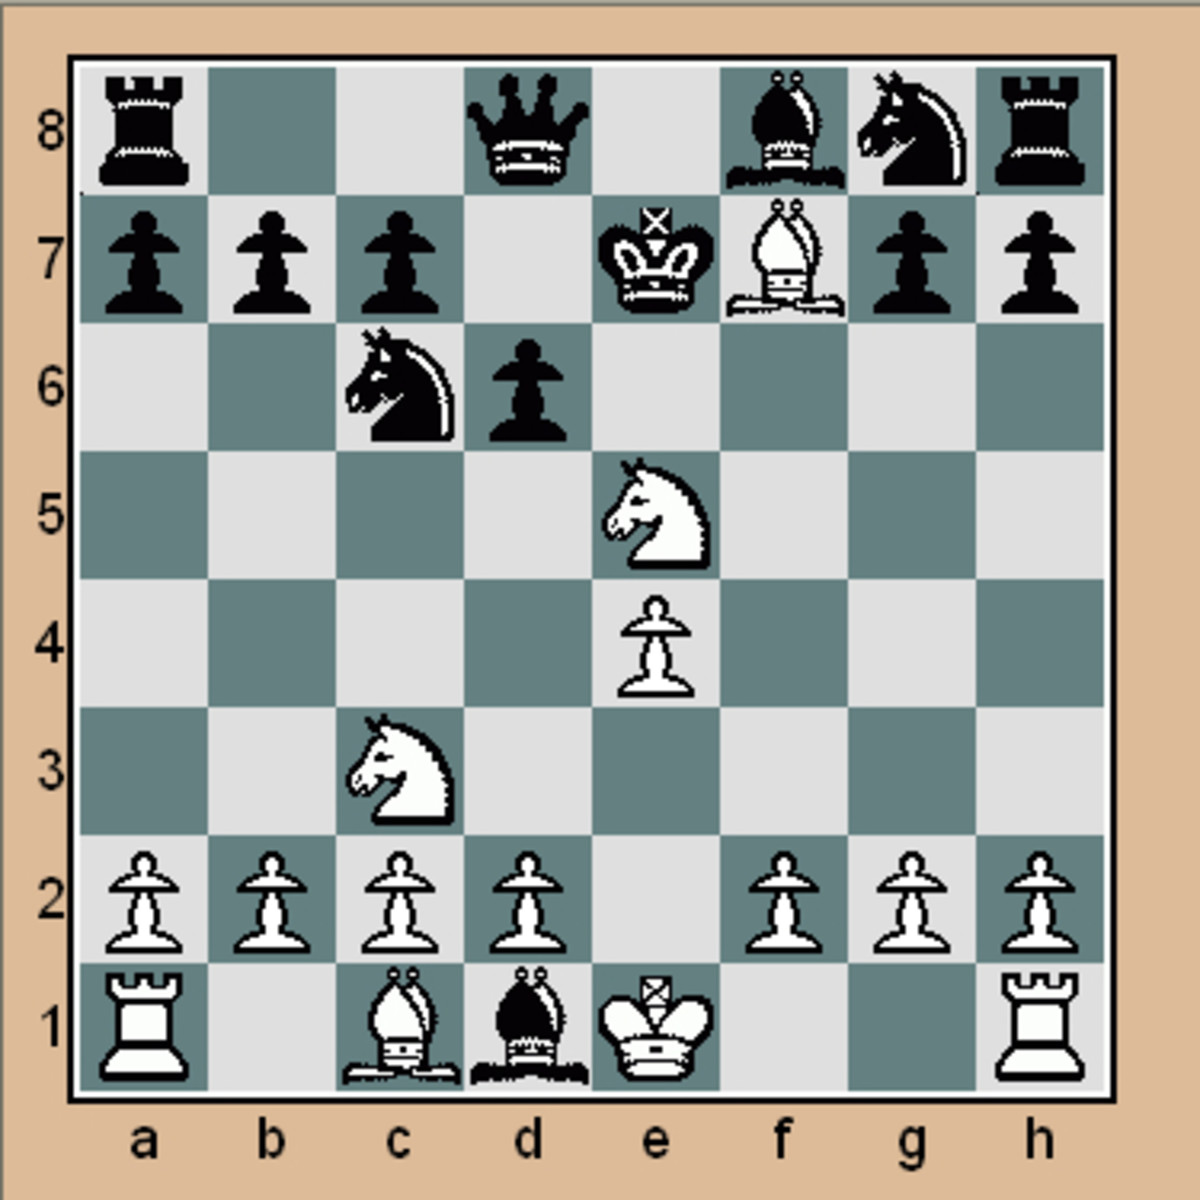 Mate in 1 chess puzzle #2 (Click to enlarge)